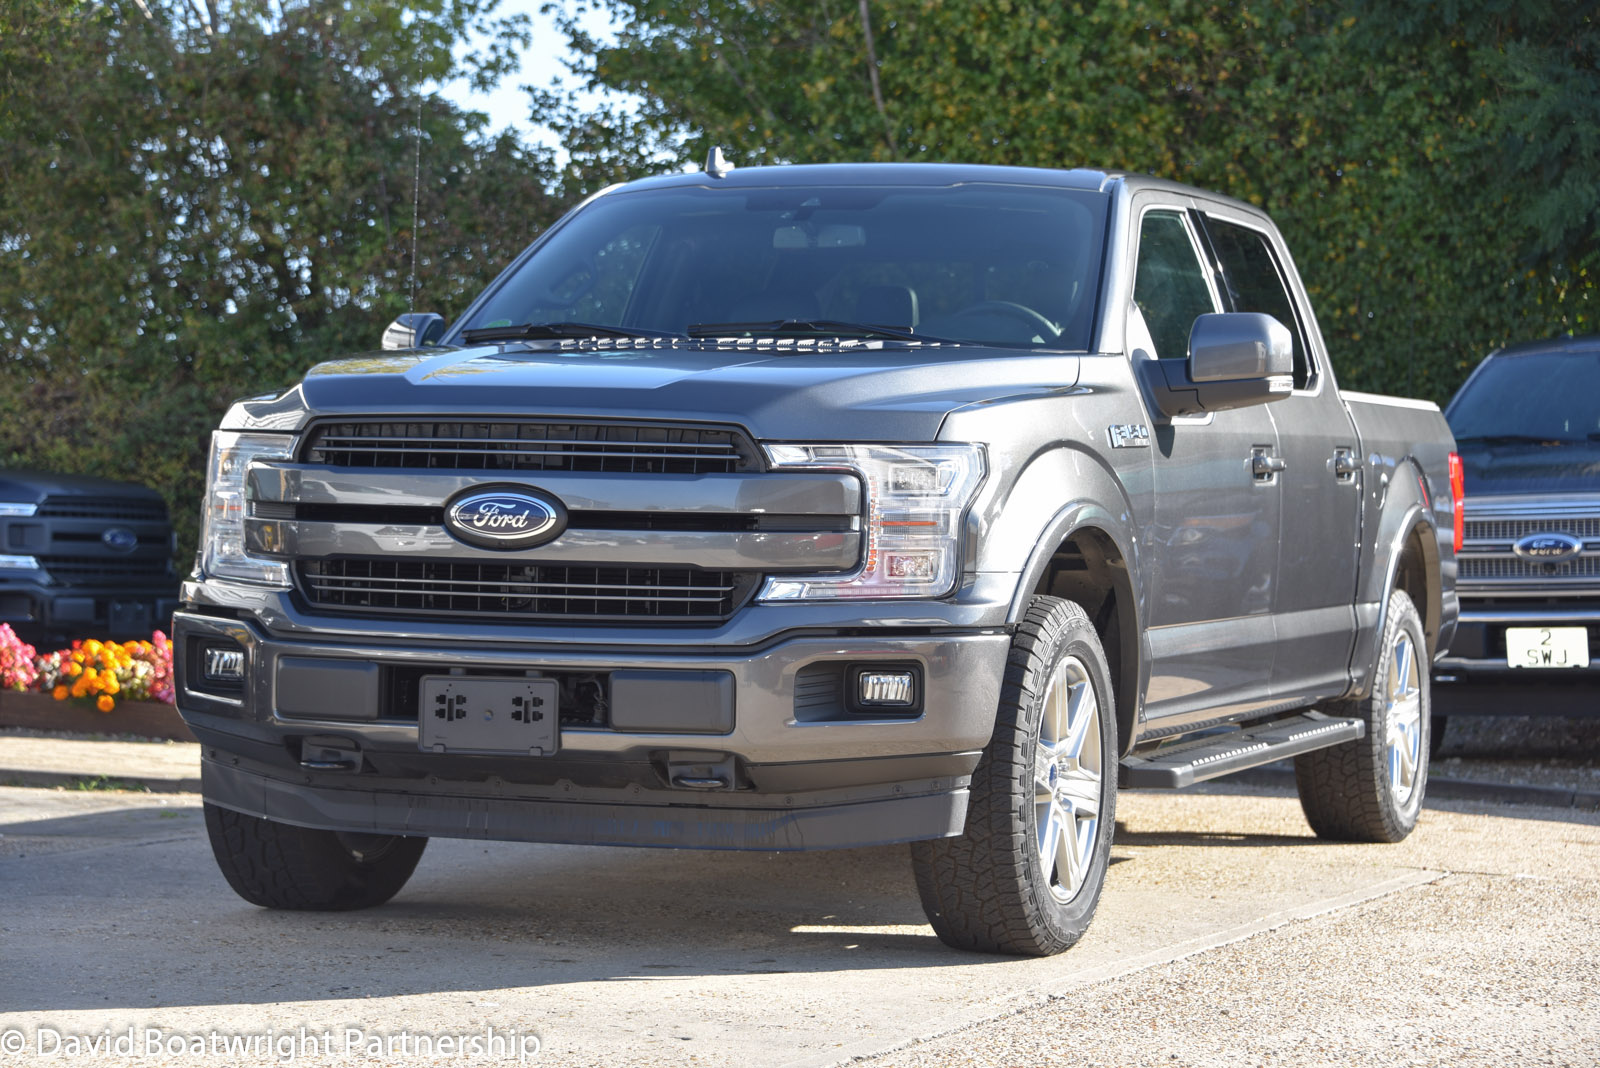 New Ford F150 Lariat Sport 5.0 V8